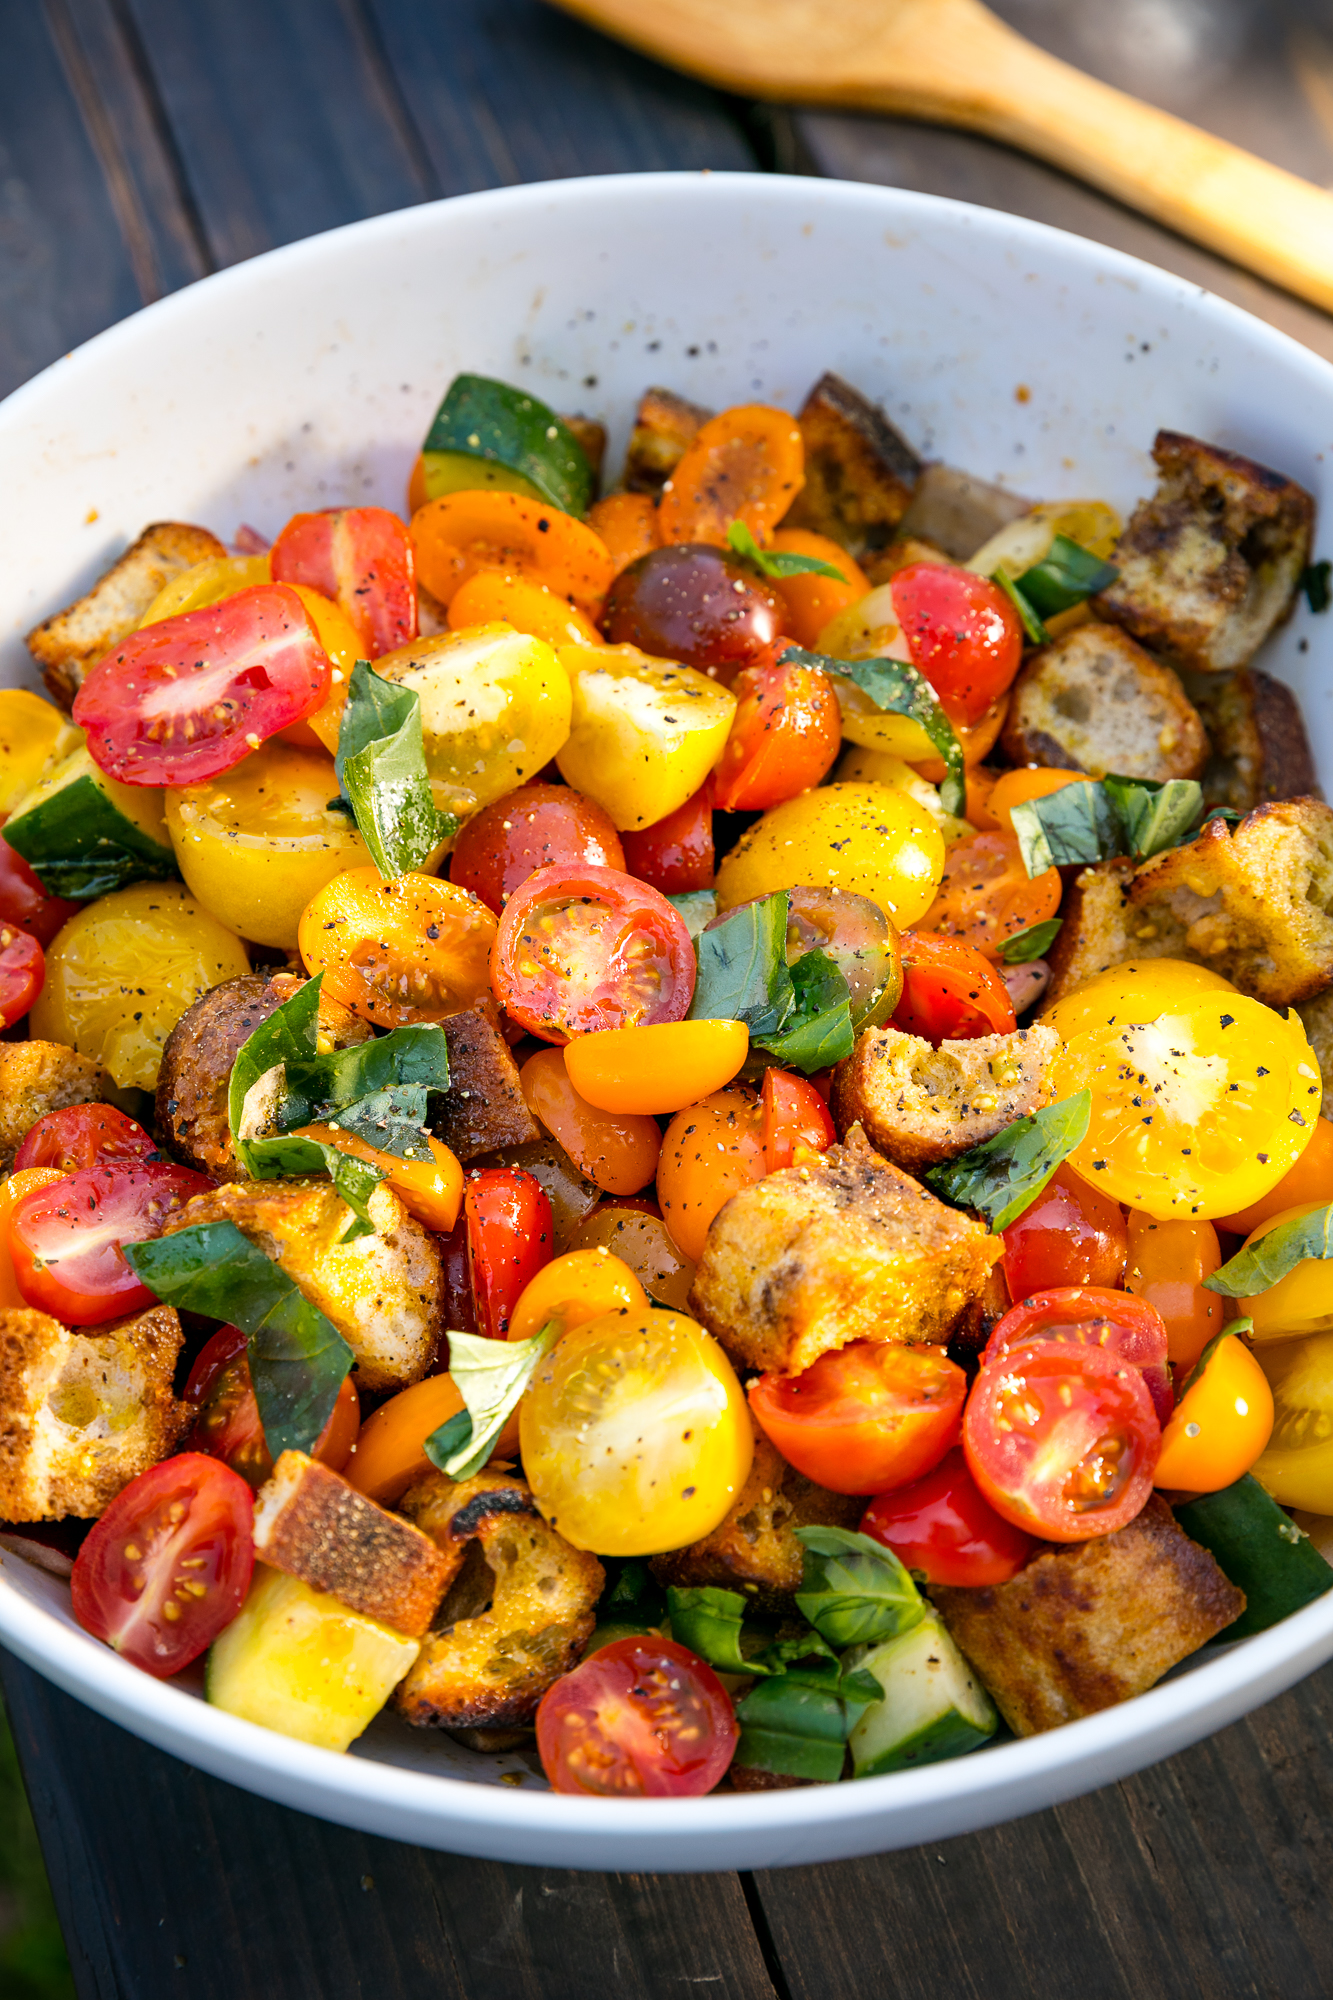 12 best tomato salad recipes easy ideas for tomato for Easy salad ideas for bbq